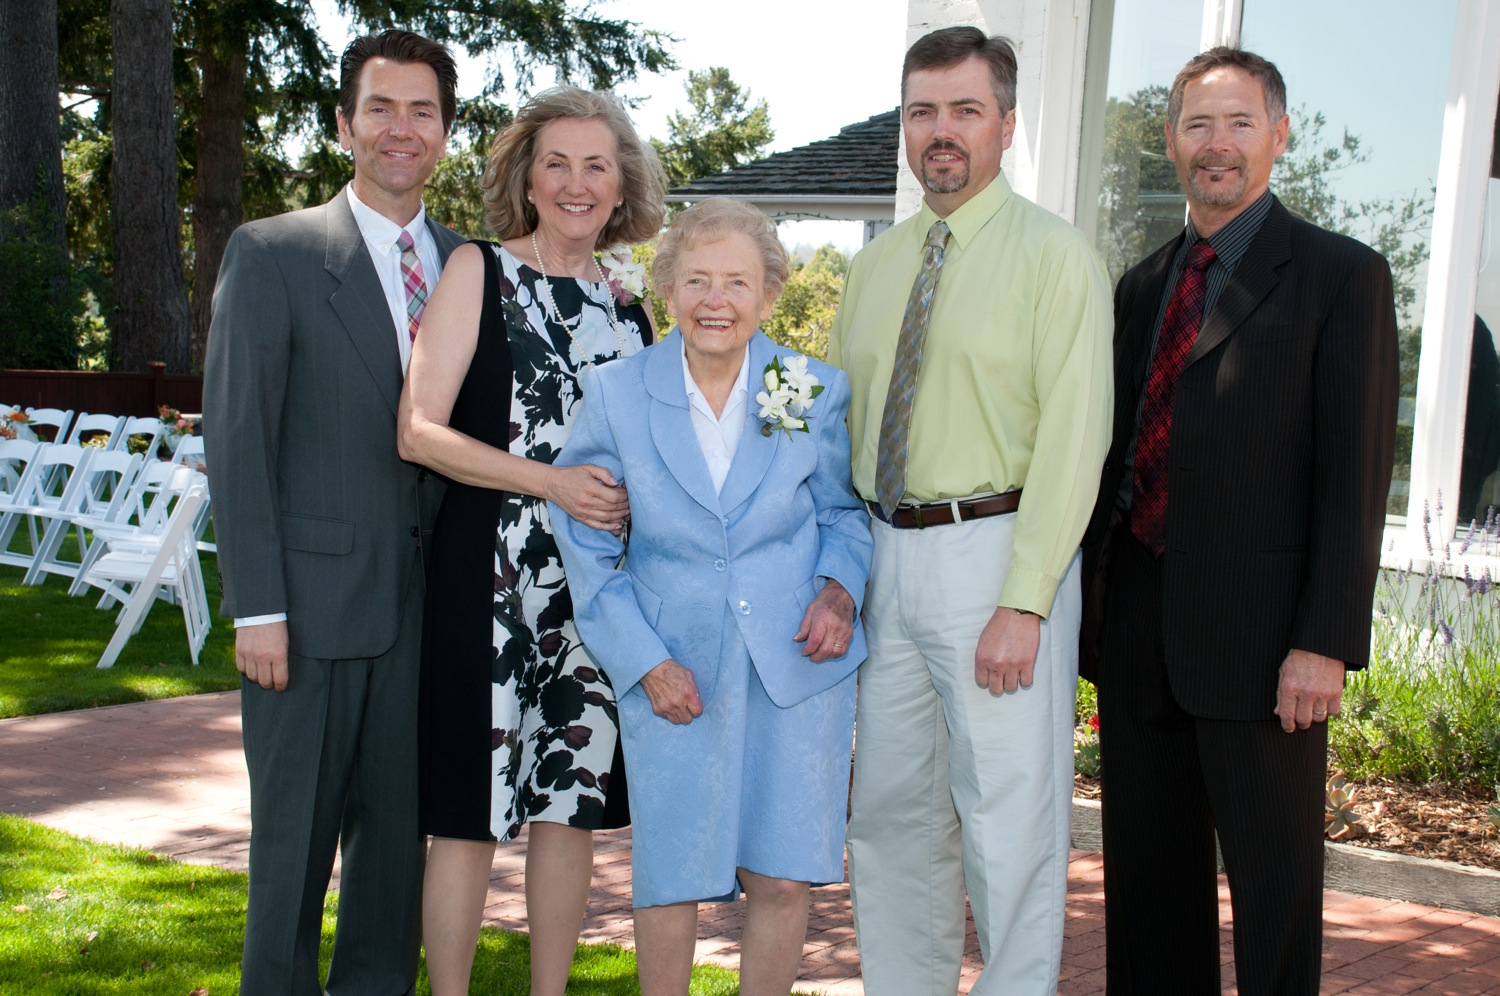 Ted, Susan, Mary, Tod, and Tim Dahle.